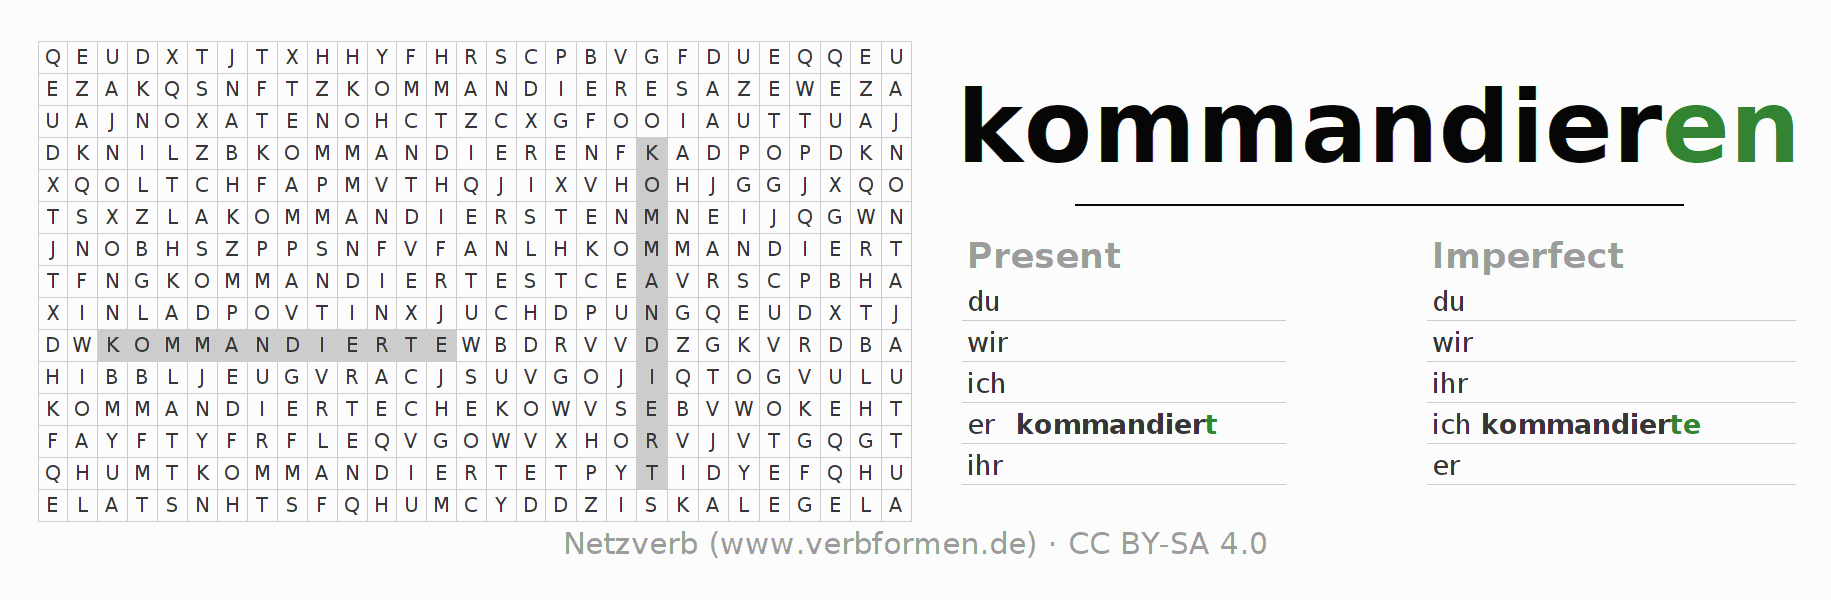 Word search puzzle for the conjugation of the verb kommandieren